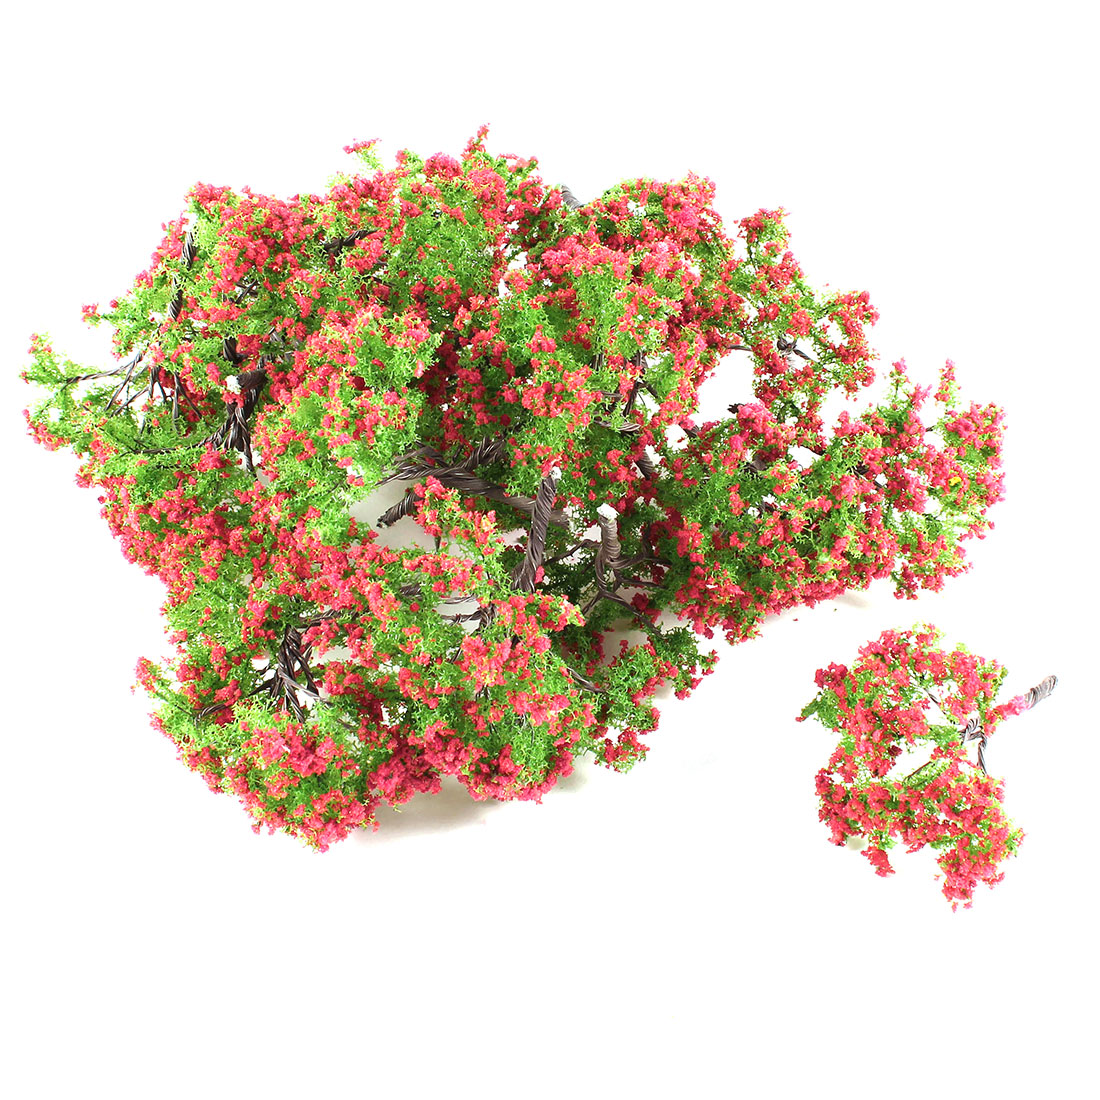 25Pcs Plastic Green Leaf Red Flower Tree Decoration 6.5cm Height 1:100